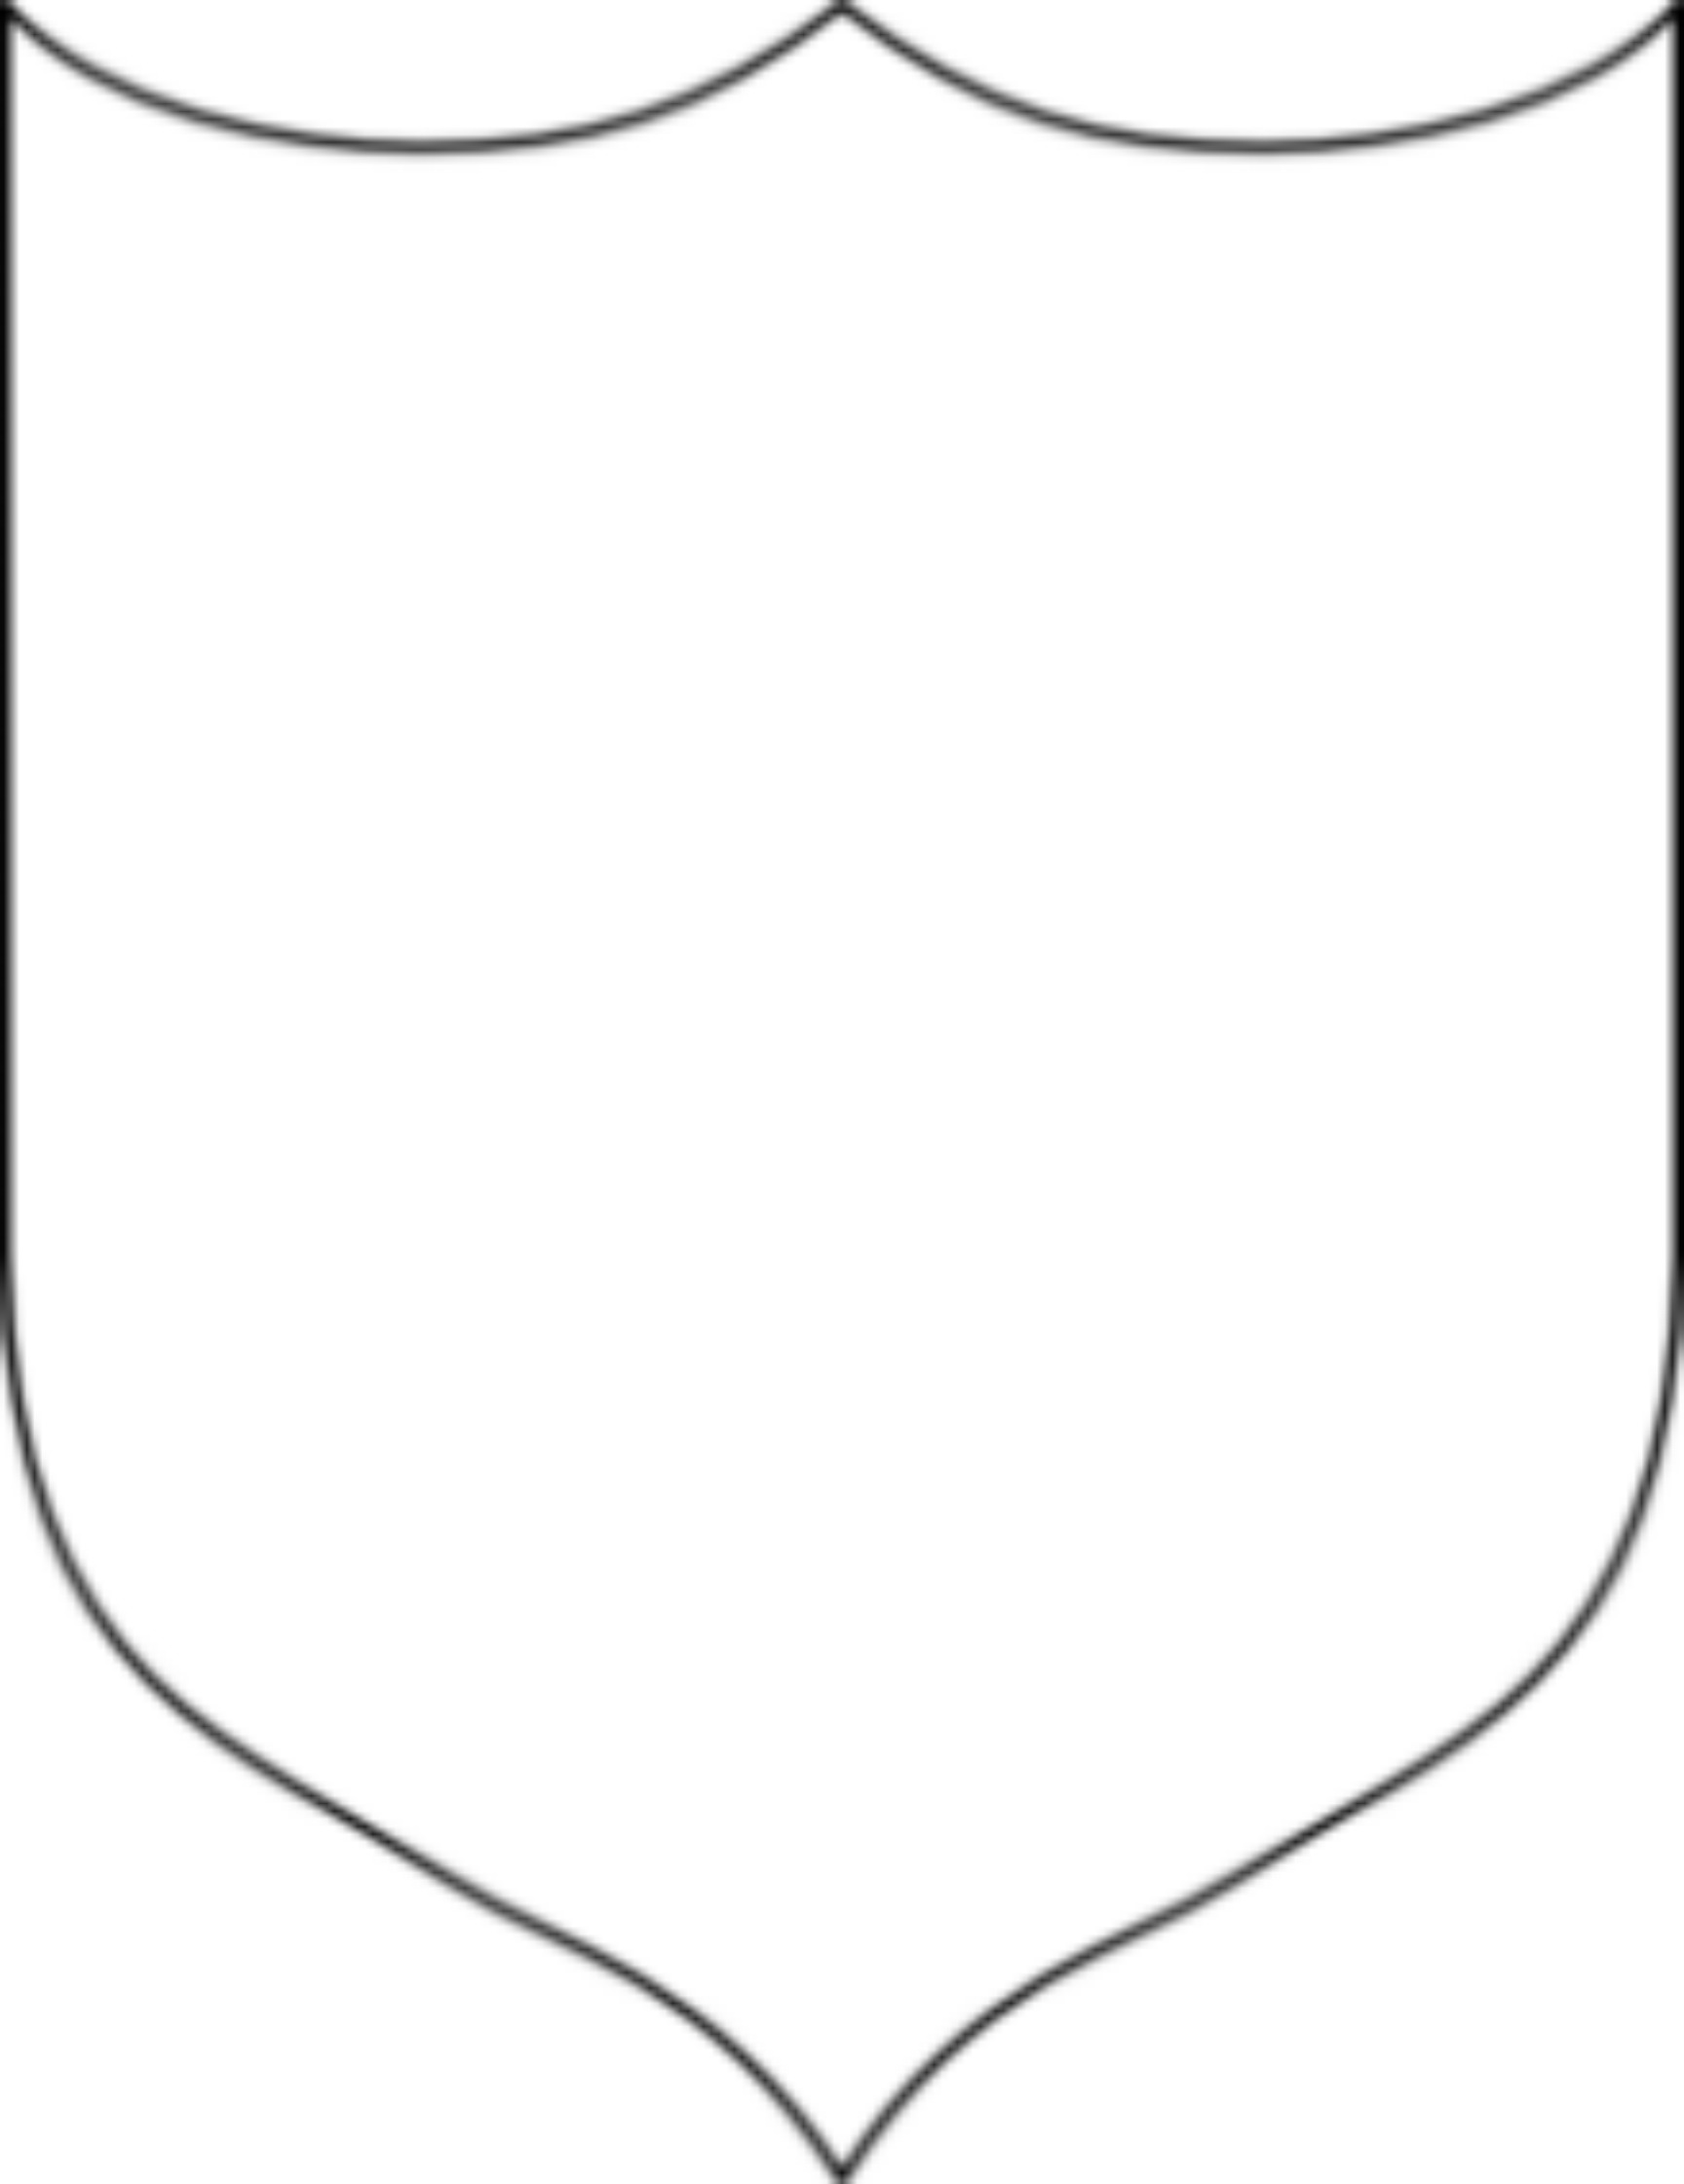 cool-shield-template-coat-of-arms-template-with-banner-blank.jpg